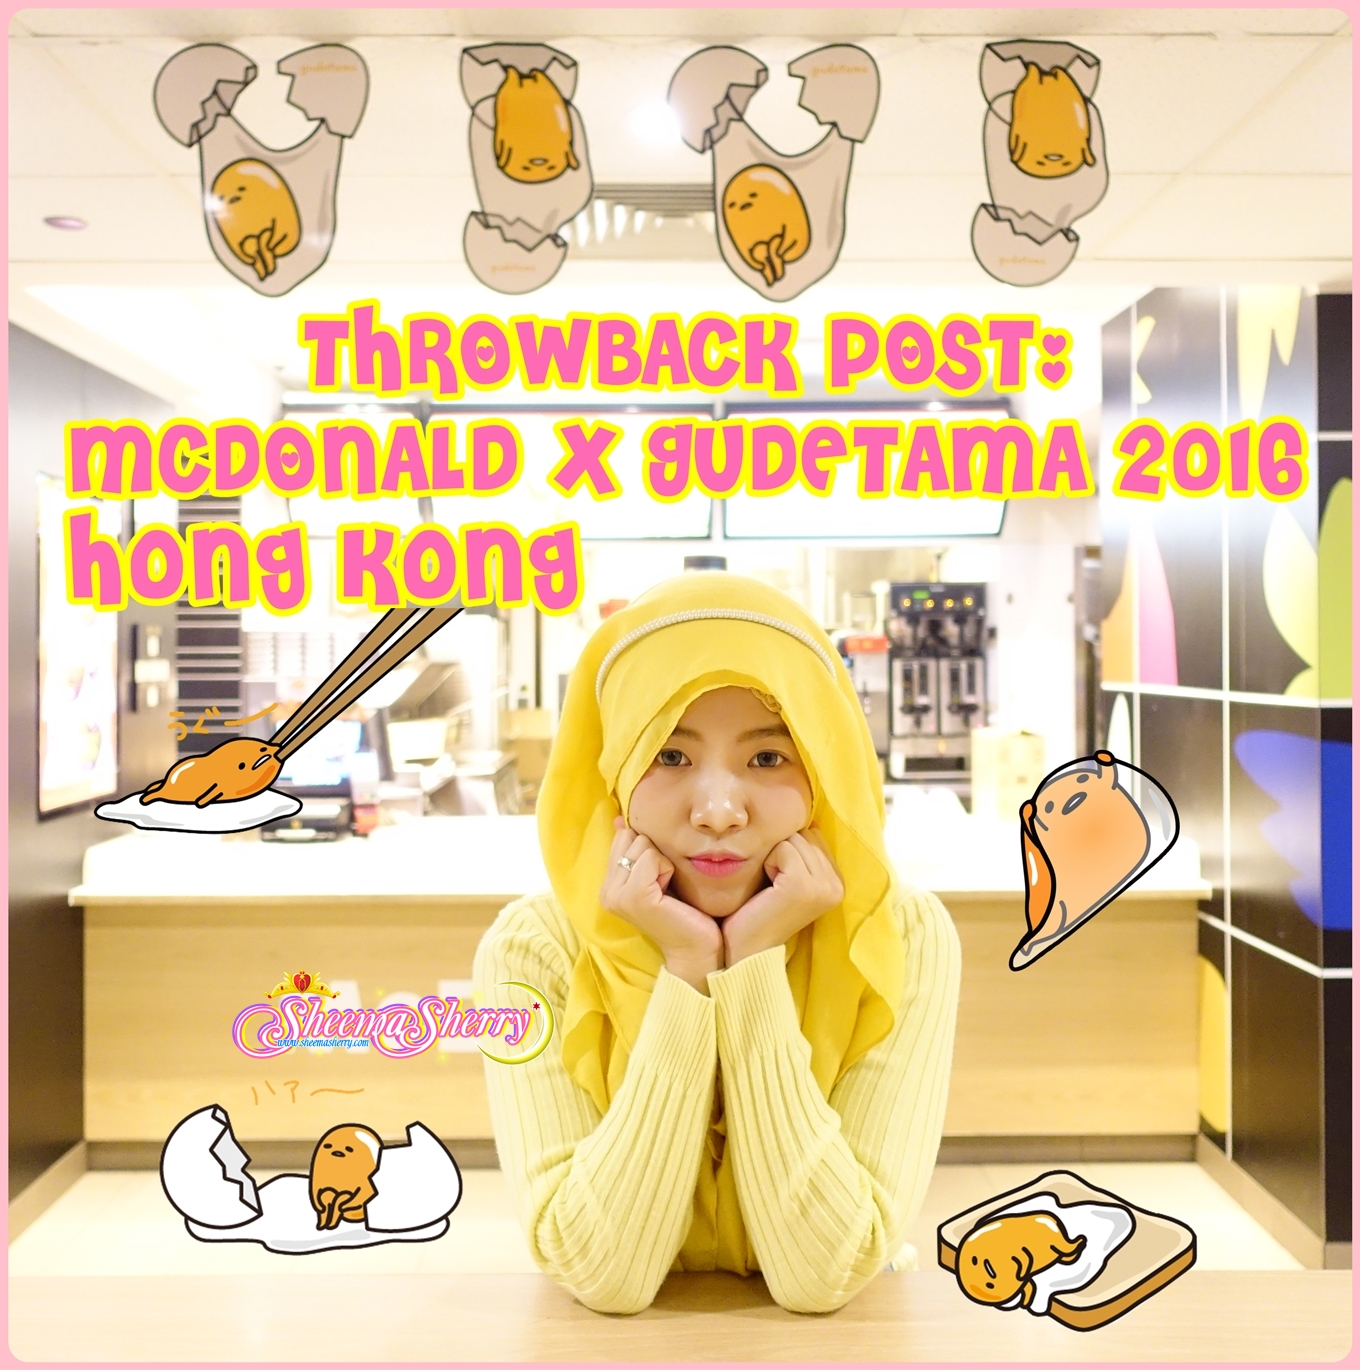 Gudetama in Hong Kong McDonald 2016 sanrio kawaii hijabi hijab muslim blogger sheema sherry fashion beauty